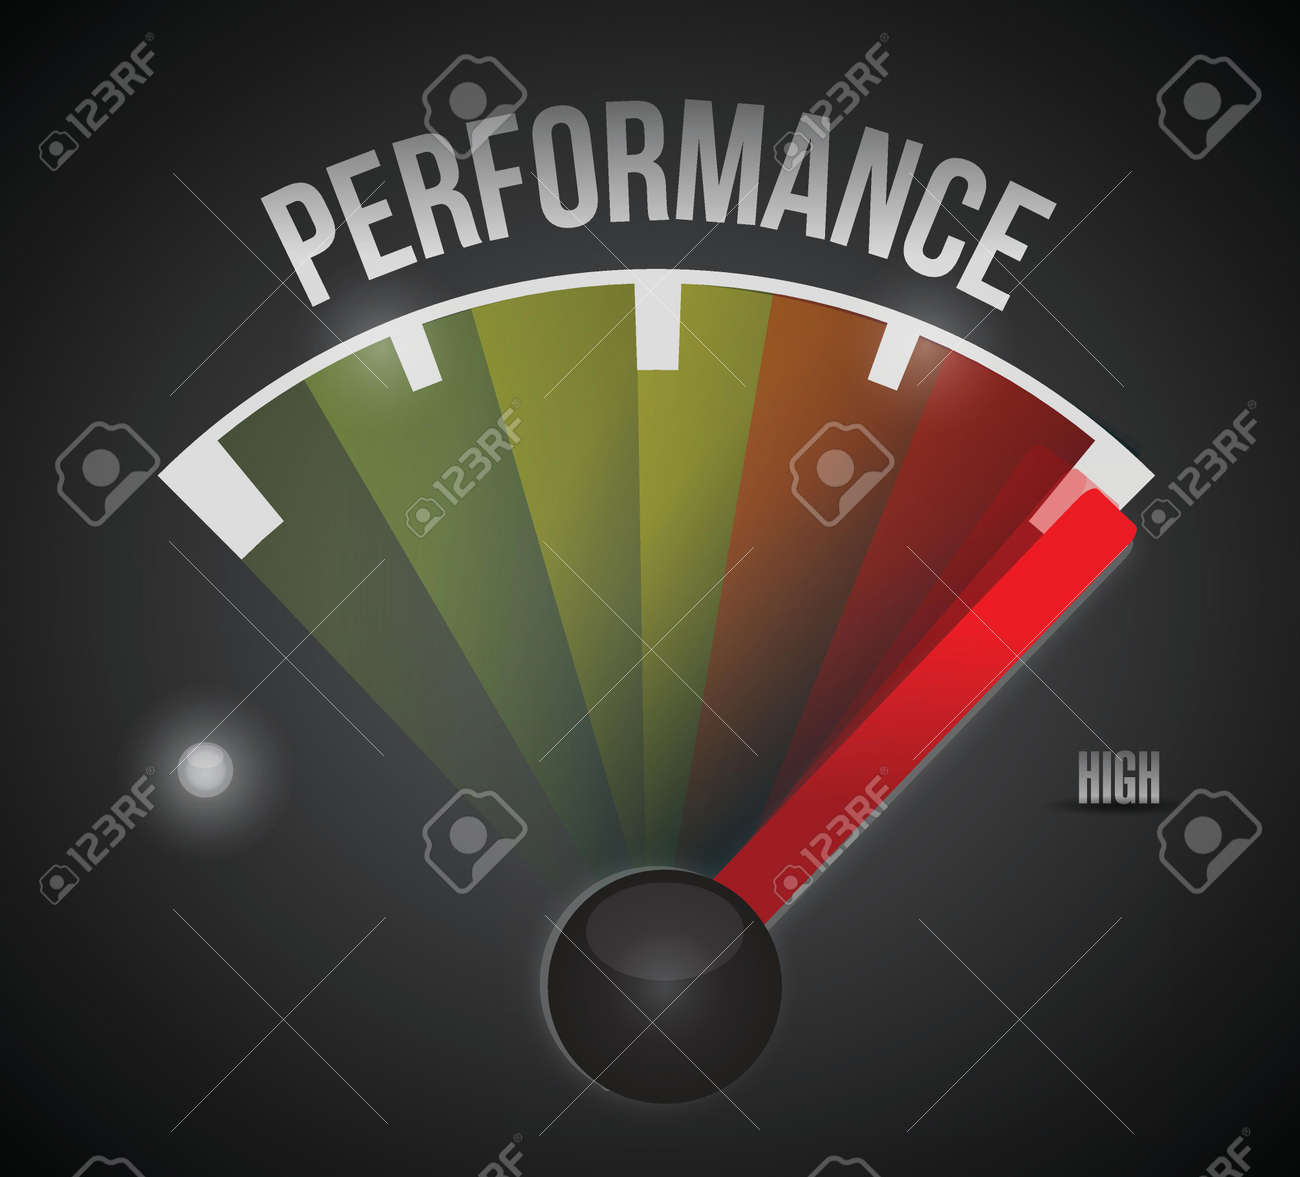 performance level measure meter from low to high, concept illustration design - 22753197